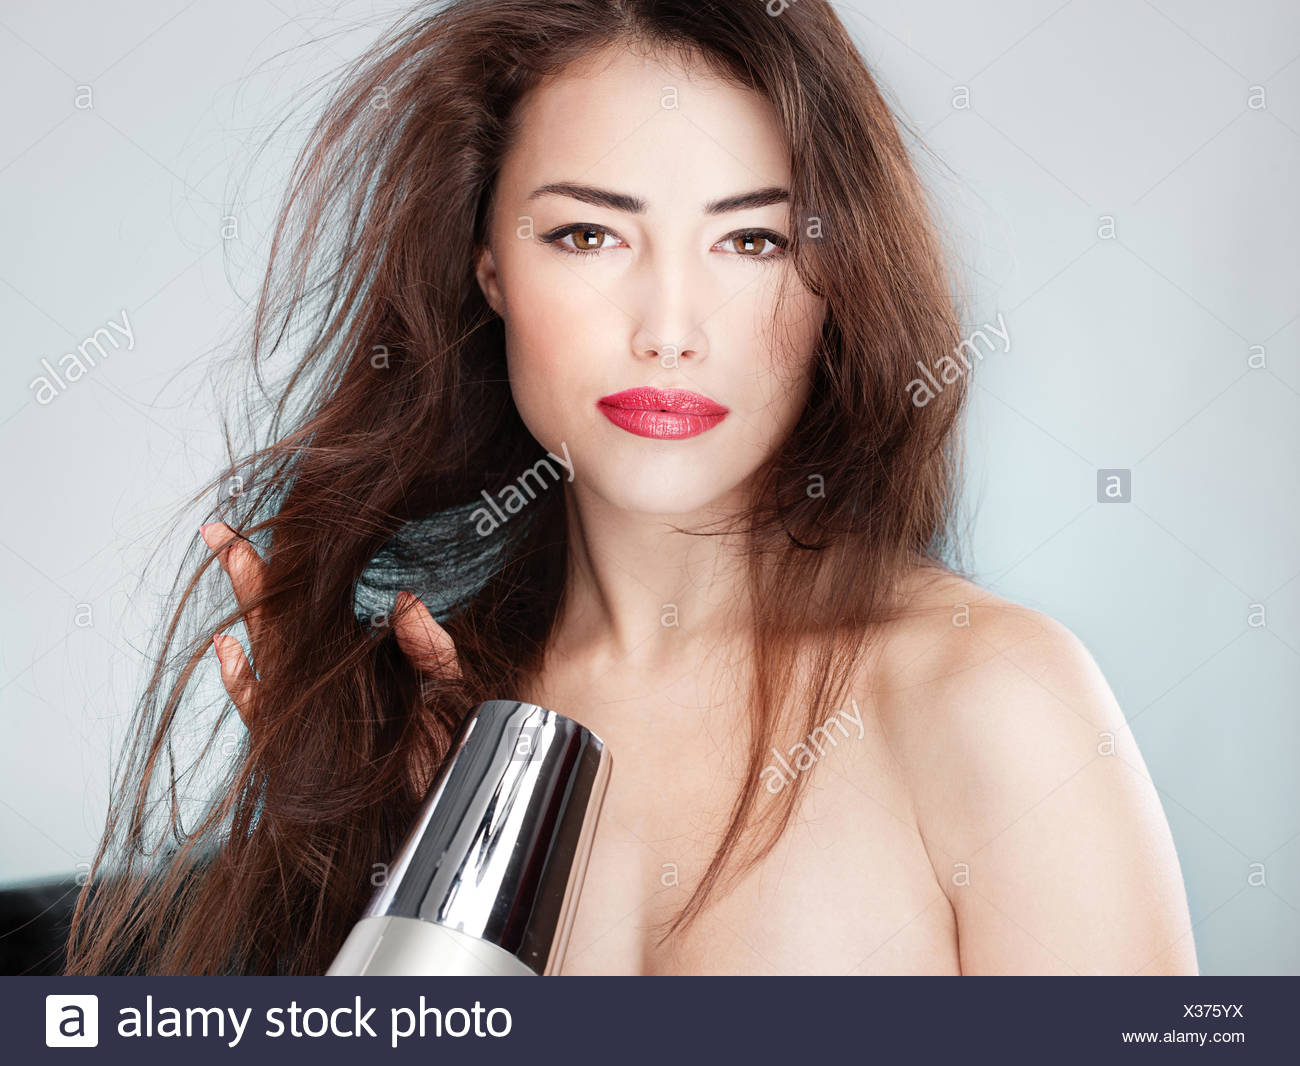 woman dry dried up barren cut designer hair woman hand hands fashion face wash metal wet dapper accosting pretty prettily - Stock Image